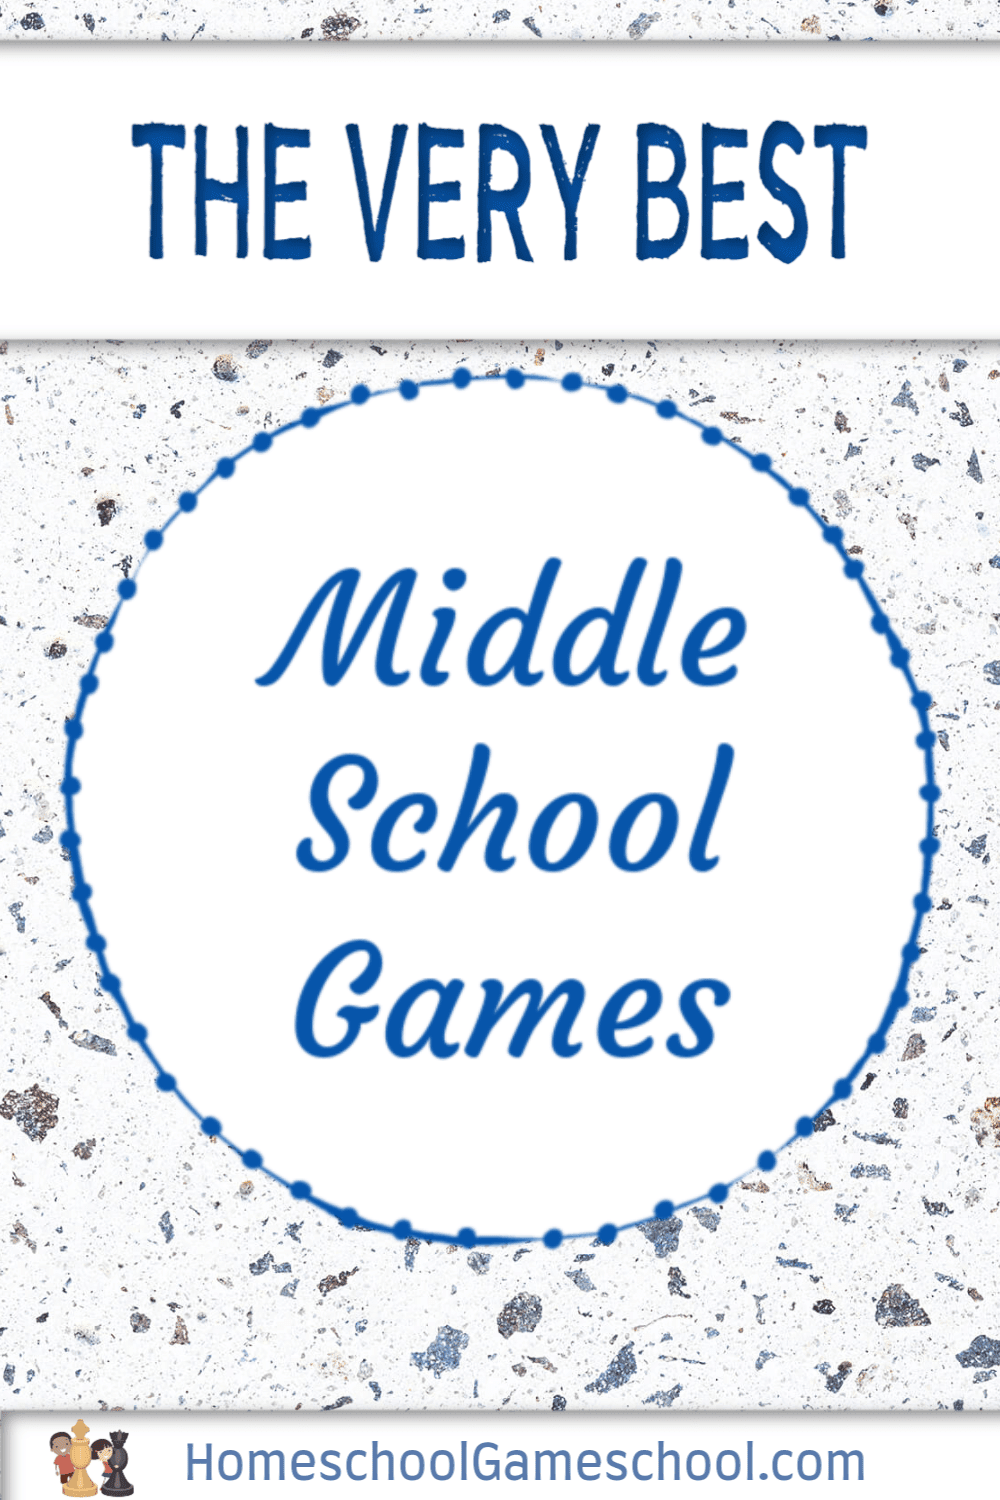 Middle School Games - Gameschooling @ HomeschoolGameschool.com